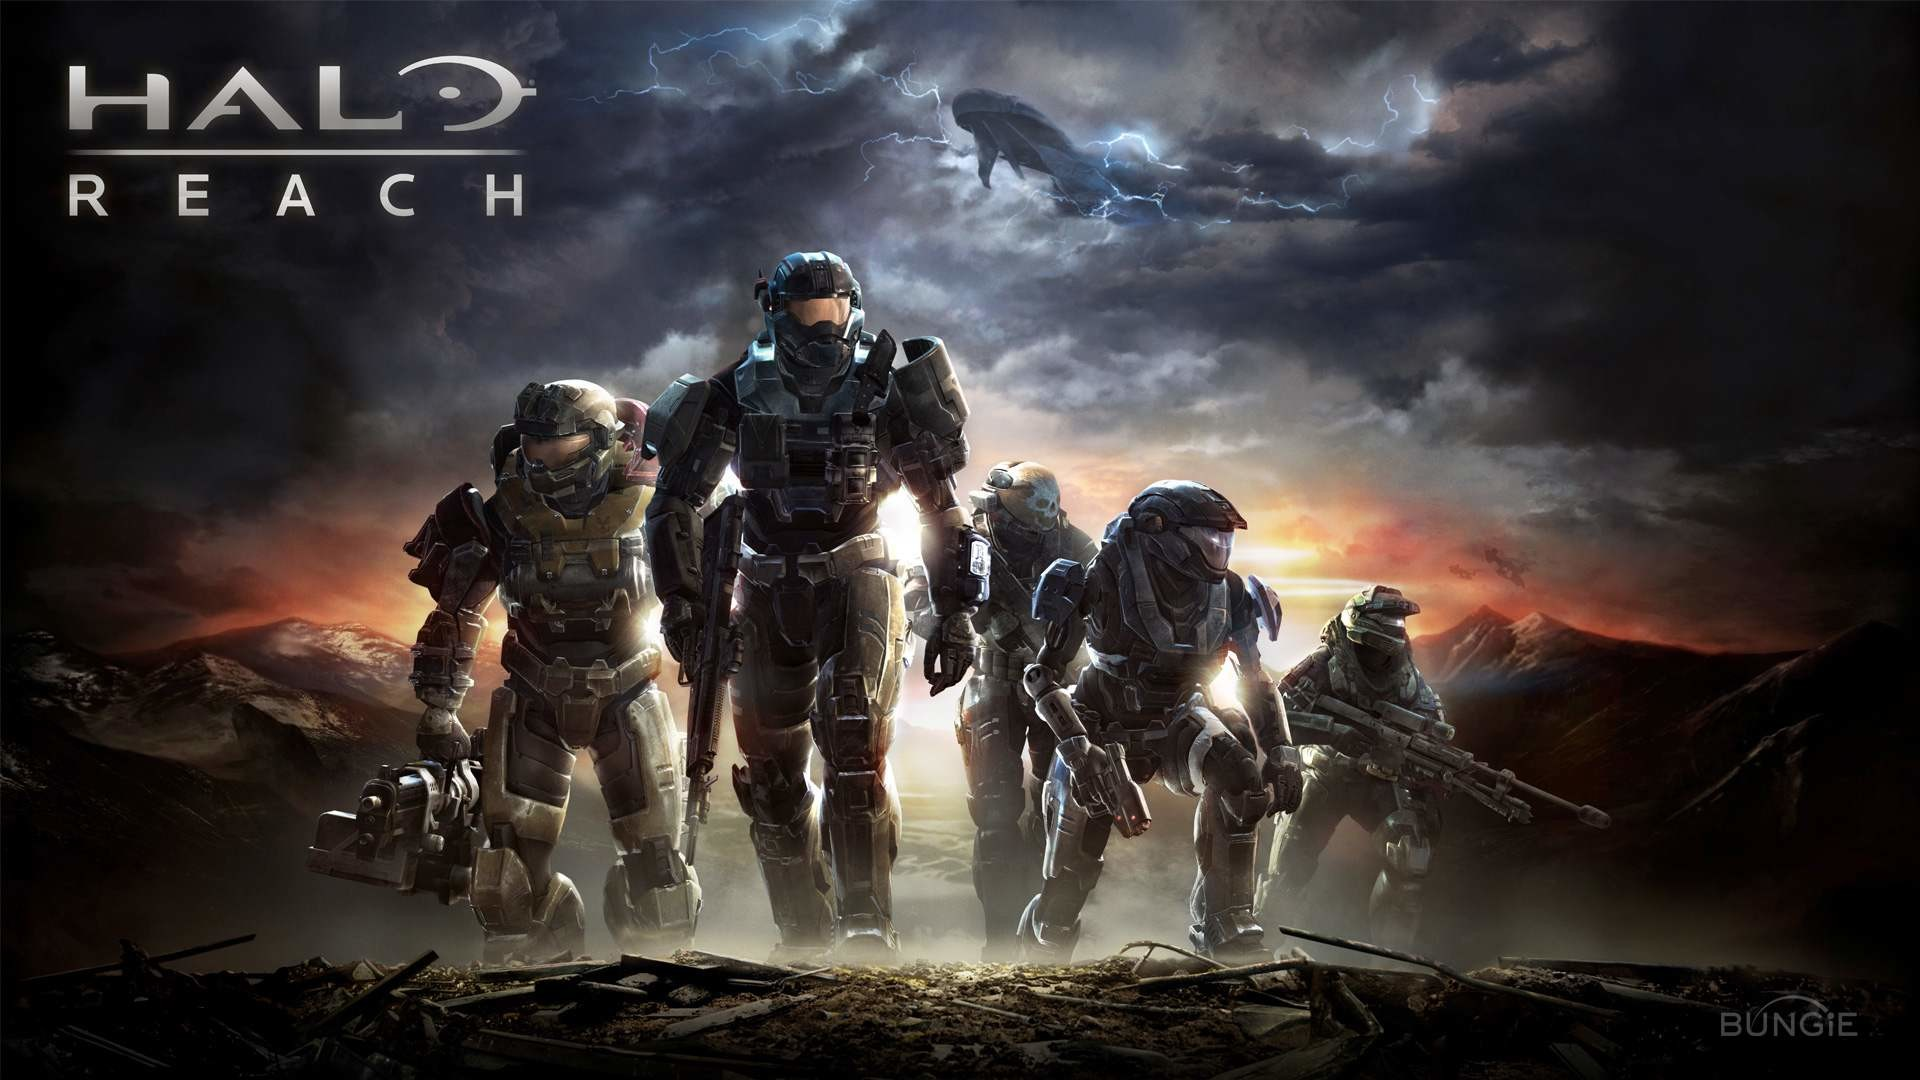 1920x1080 Halo Reach Wallpapers in HD